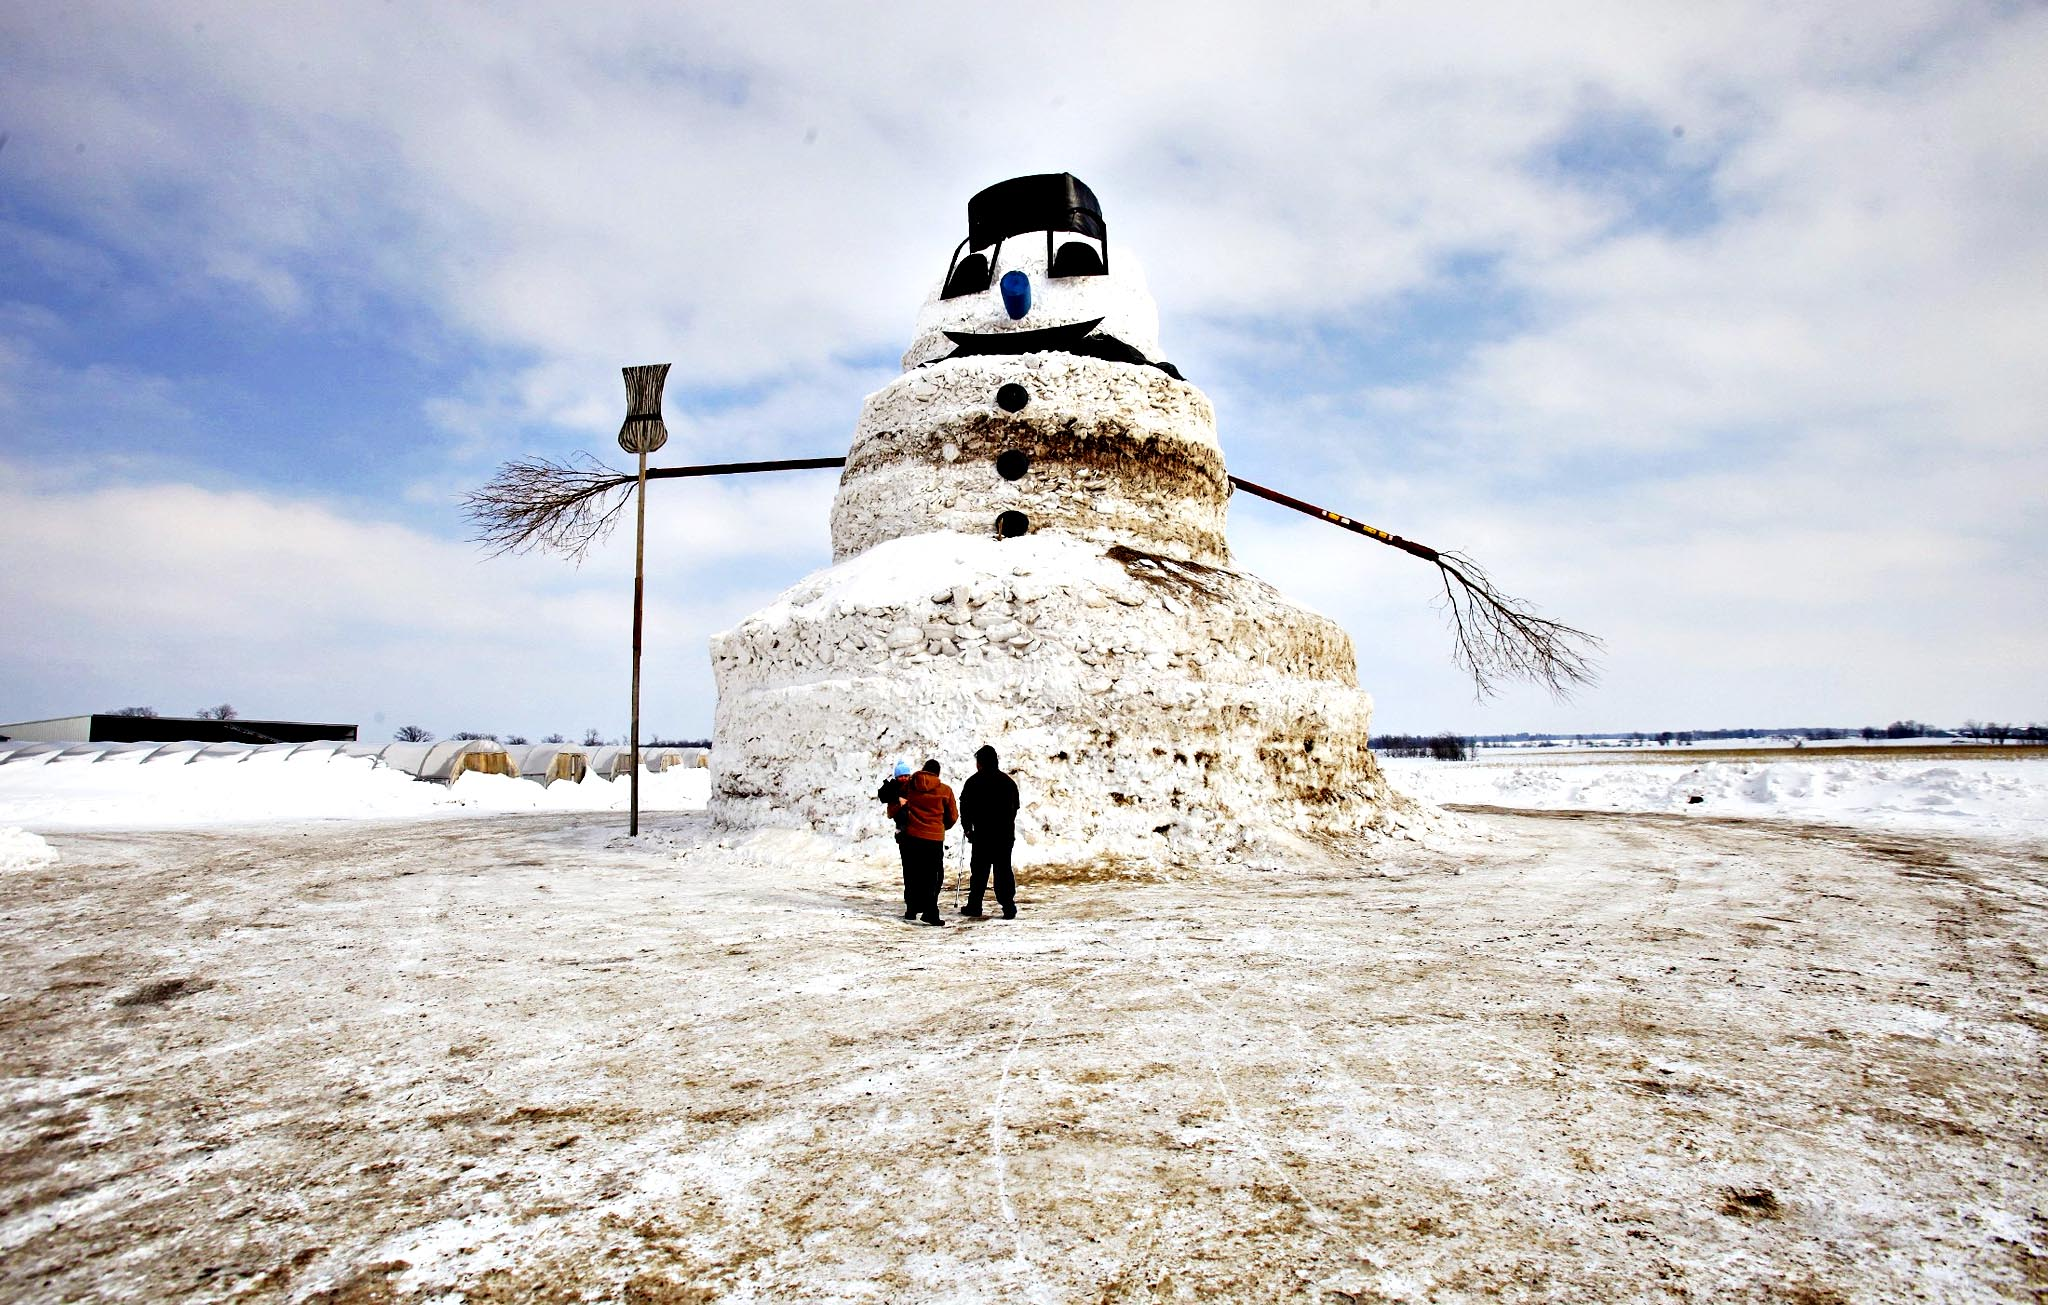 """A couple and a child look at a 50-foot snowman named """"Granddaddy"""" in Gilman, Minnesota. The snowman began to take shape earlier this winter when farmer Greg Novak needed to move mounting snow piles away from his greenhouses."""